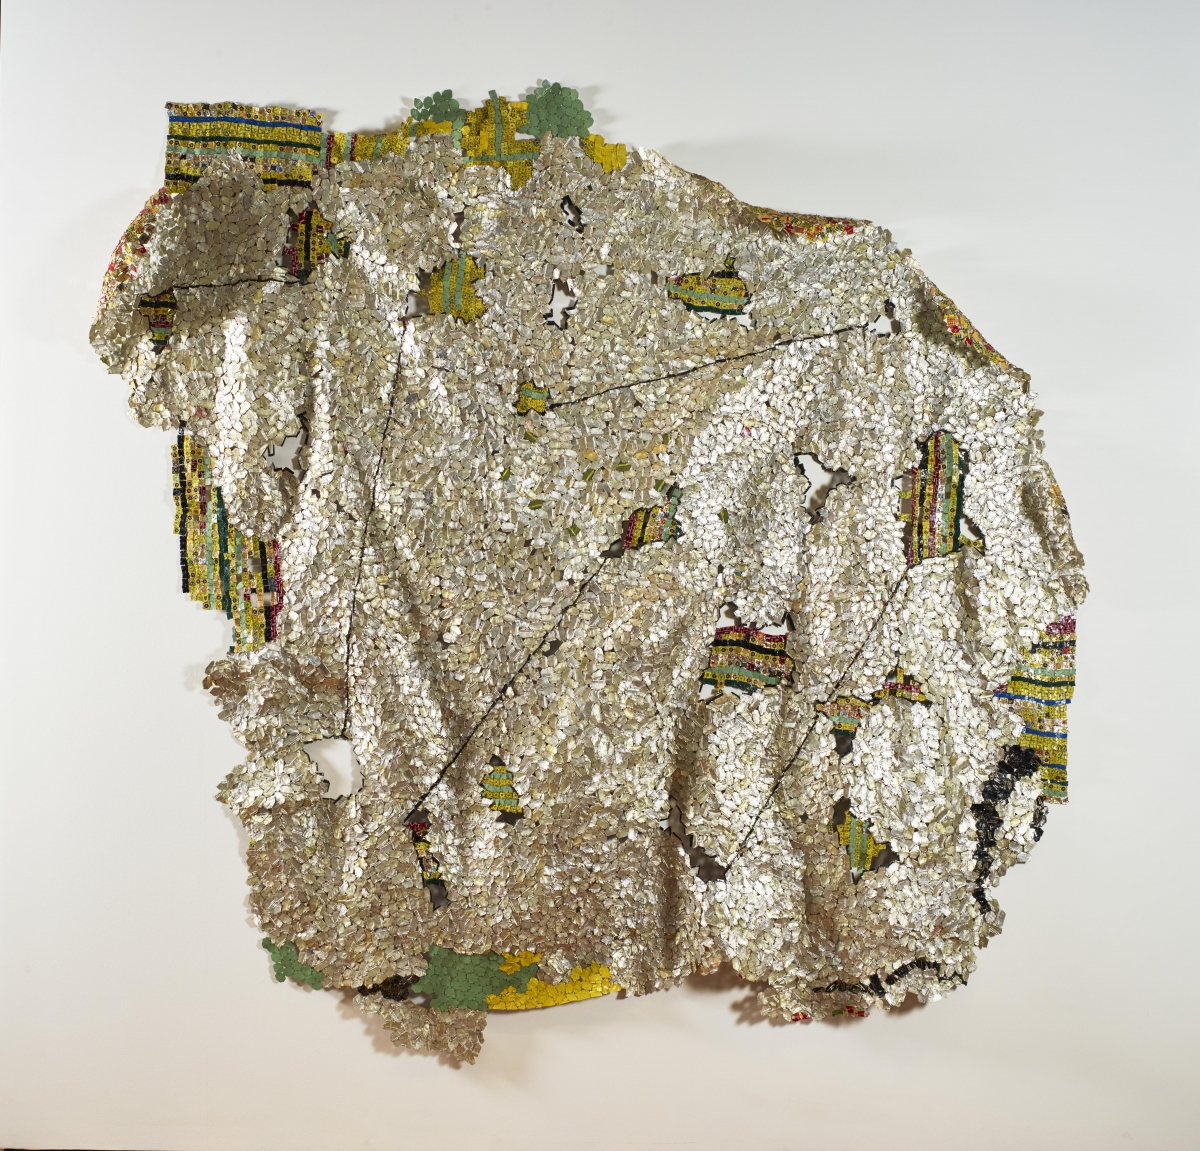 El Anatsui (Ghanaian, born 1944), Another Place (full view and detail), 2014. Found aluminum and copper wire, 283.2 × 284.5 cm. Museum purchase, Fowler McCormick, Class of 1921, Fund and Sarah Lee Elson, Class of 1984, Fund for the International Artist-in-Residence Program at the Princeton University Art Museum. c 2015 El Anatsui